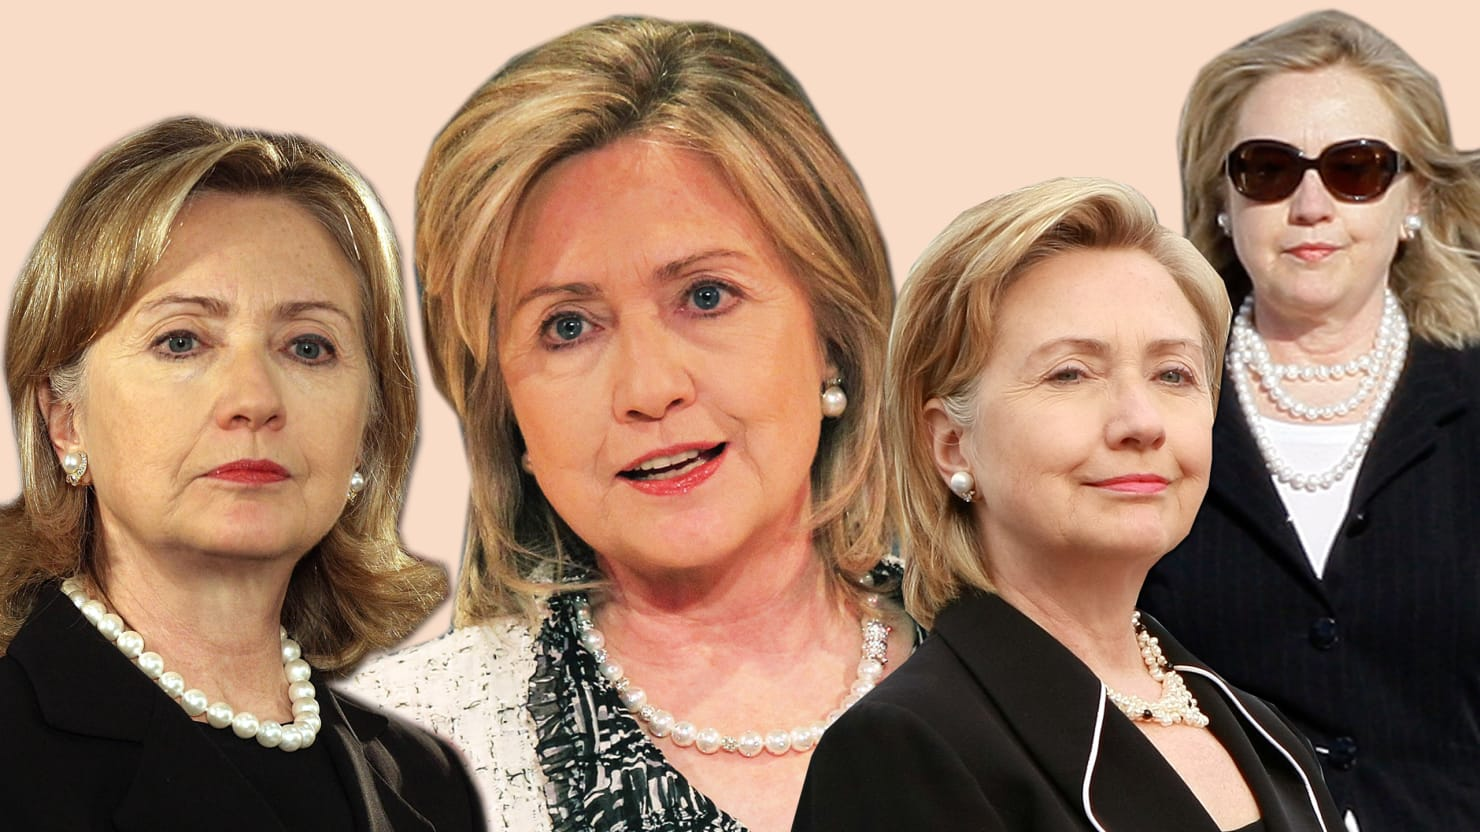 The GOP's History of Sexist Hillary-Bashing